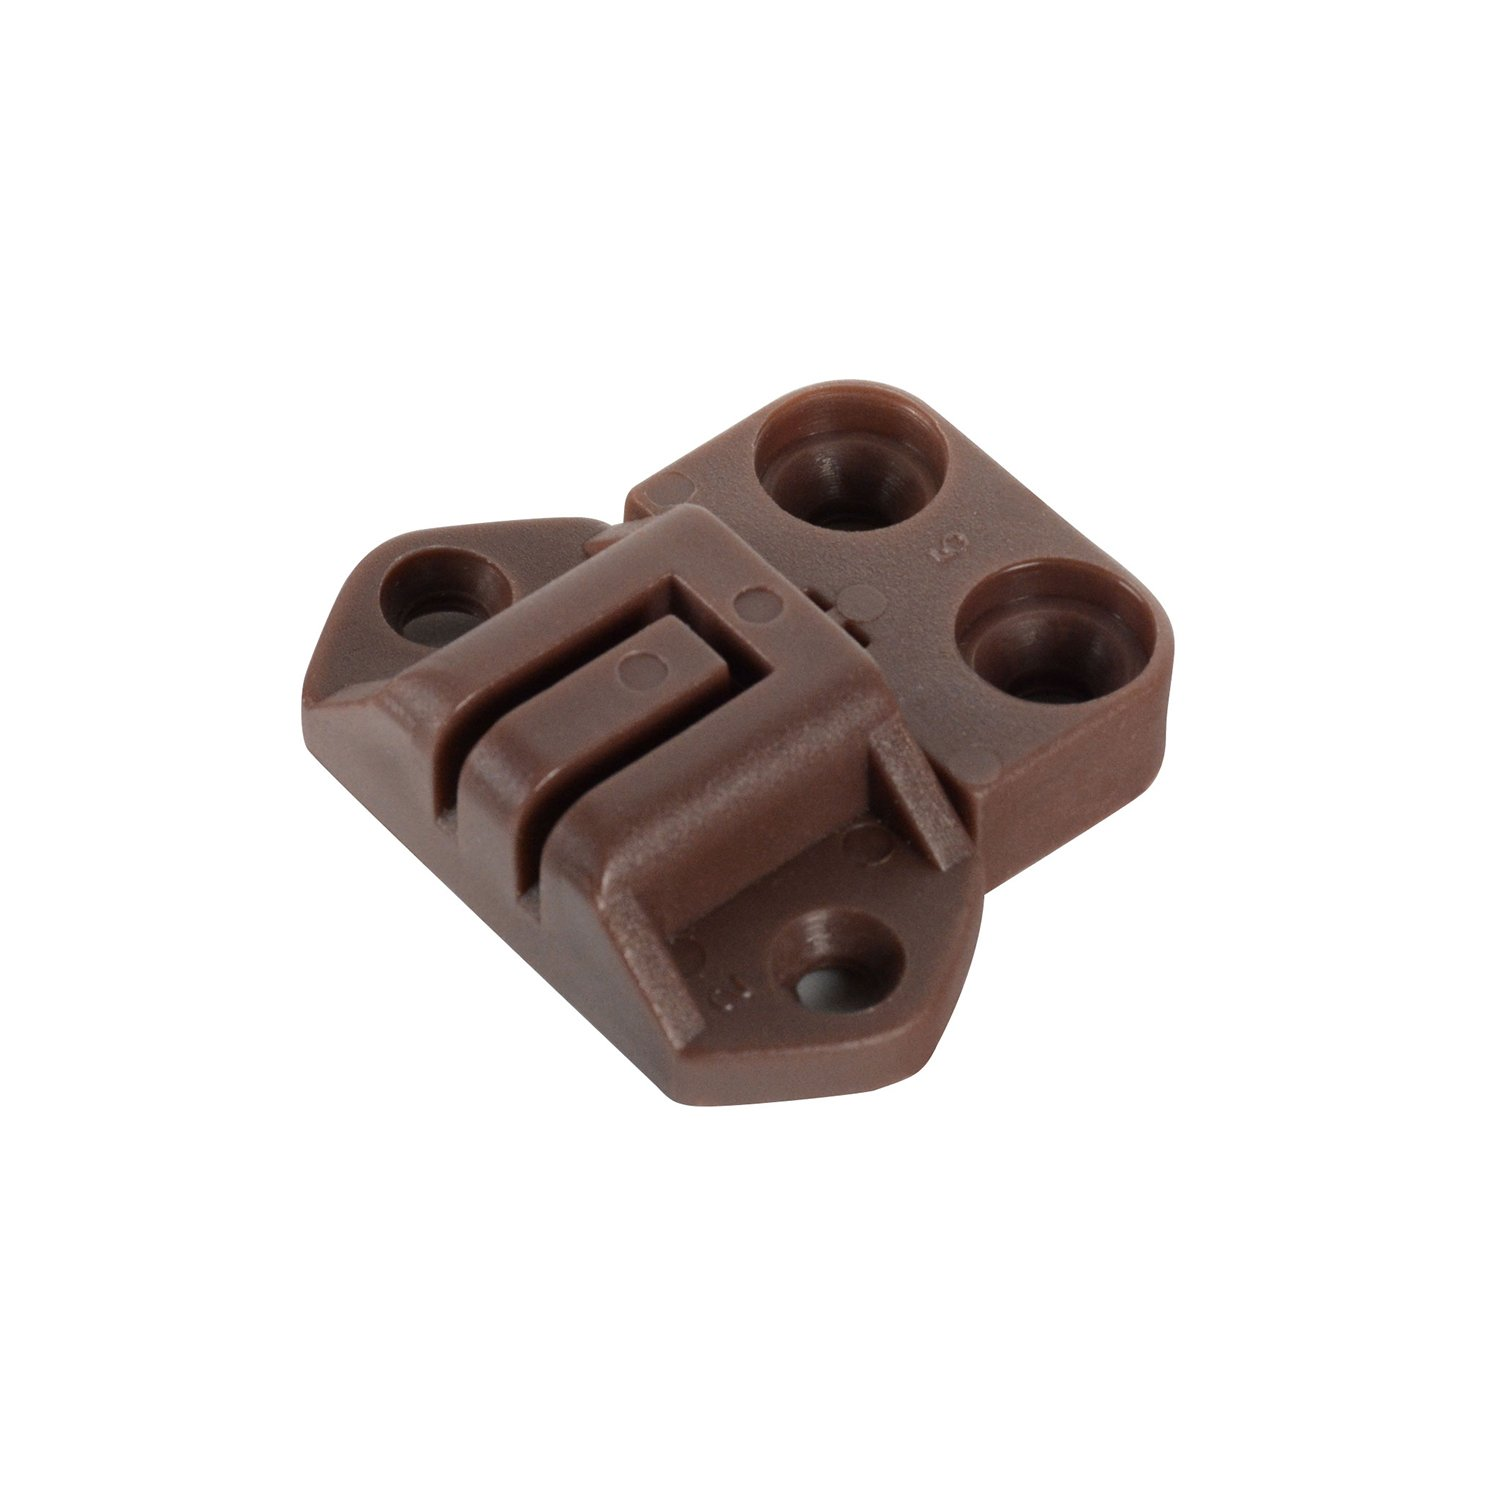 CKP Brand Table Alignment Lock and Strike, Brown - 10 Pack